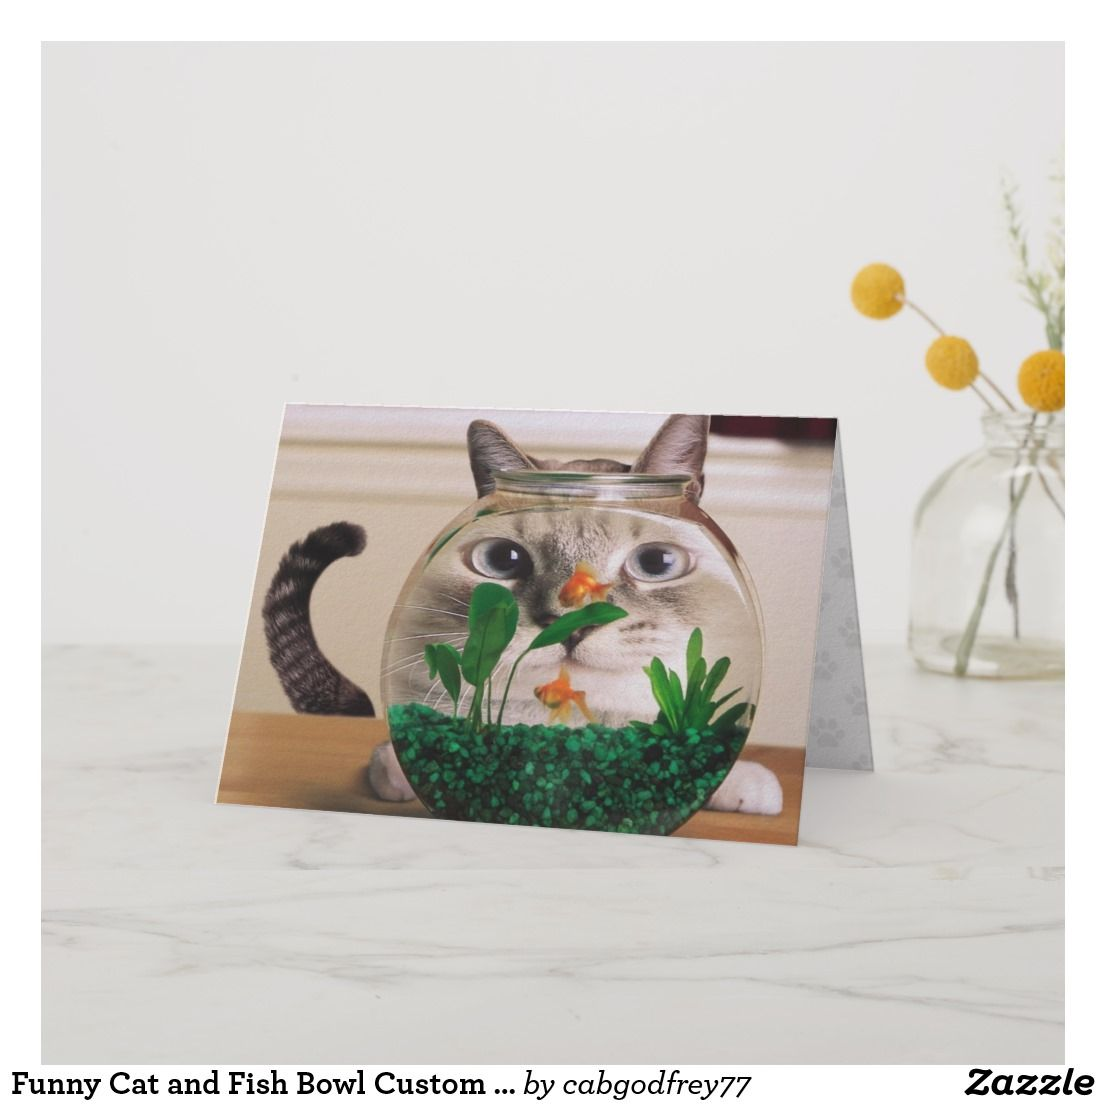 Funny Cat And Fish Bowl Custom Greeting Card Birthday Cardsfunny Cardsgreeting Cardshappy Cardbirthday Cardsonline